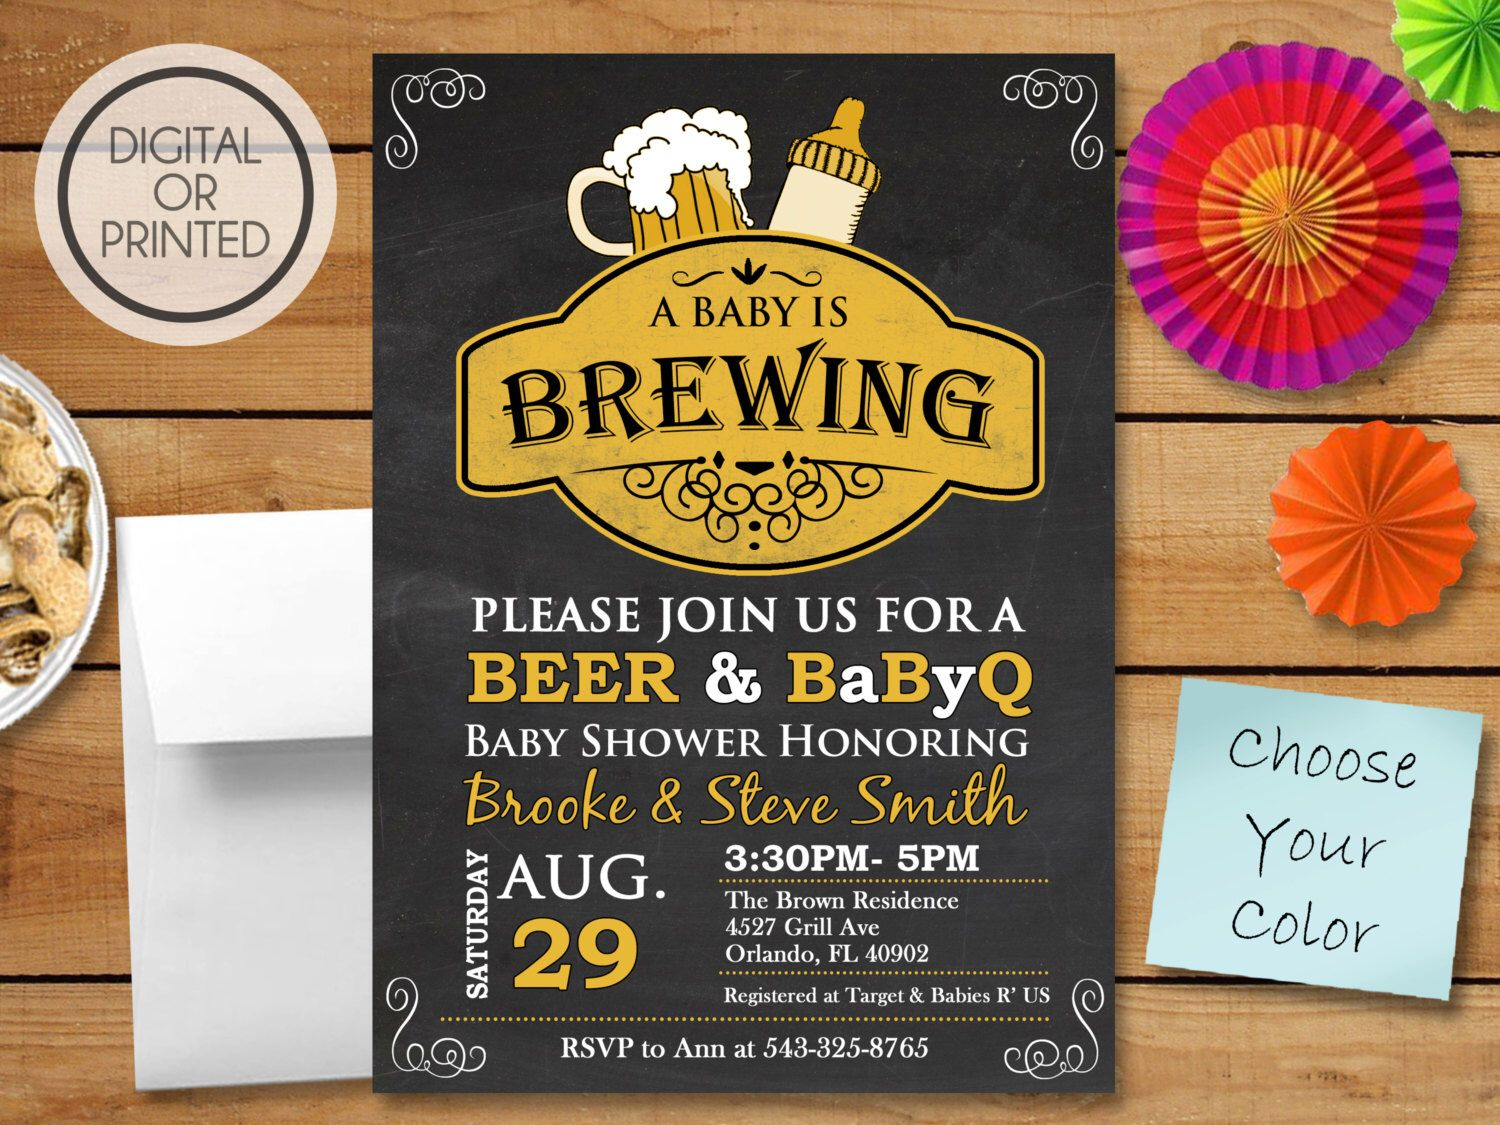 clever baby shower invitation wording%0A A Baby is Brewing Invitation  BBQ Baby Shower Invitation  Baby Q Shower  Invitations